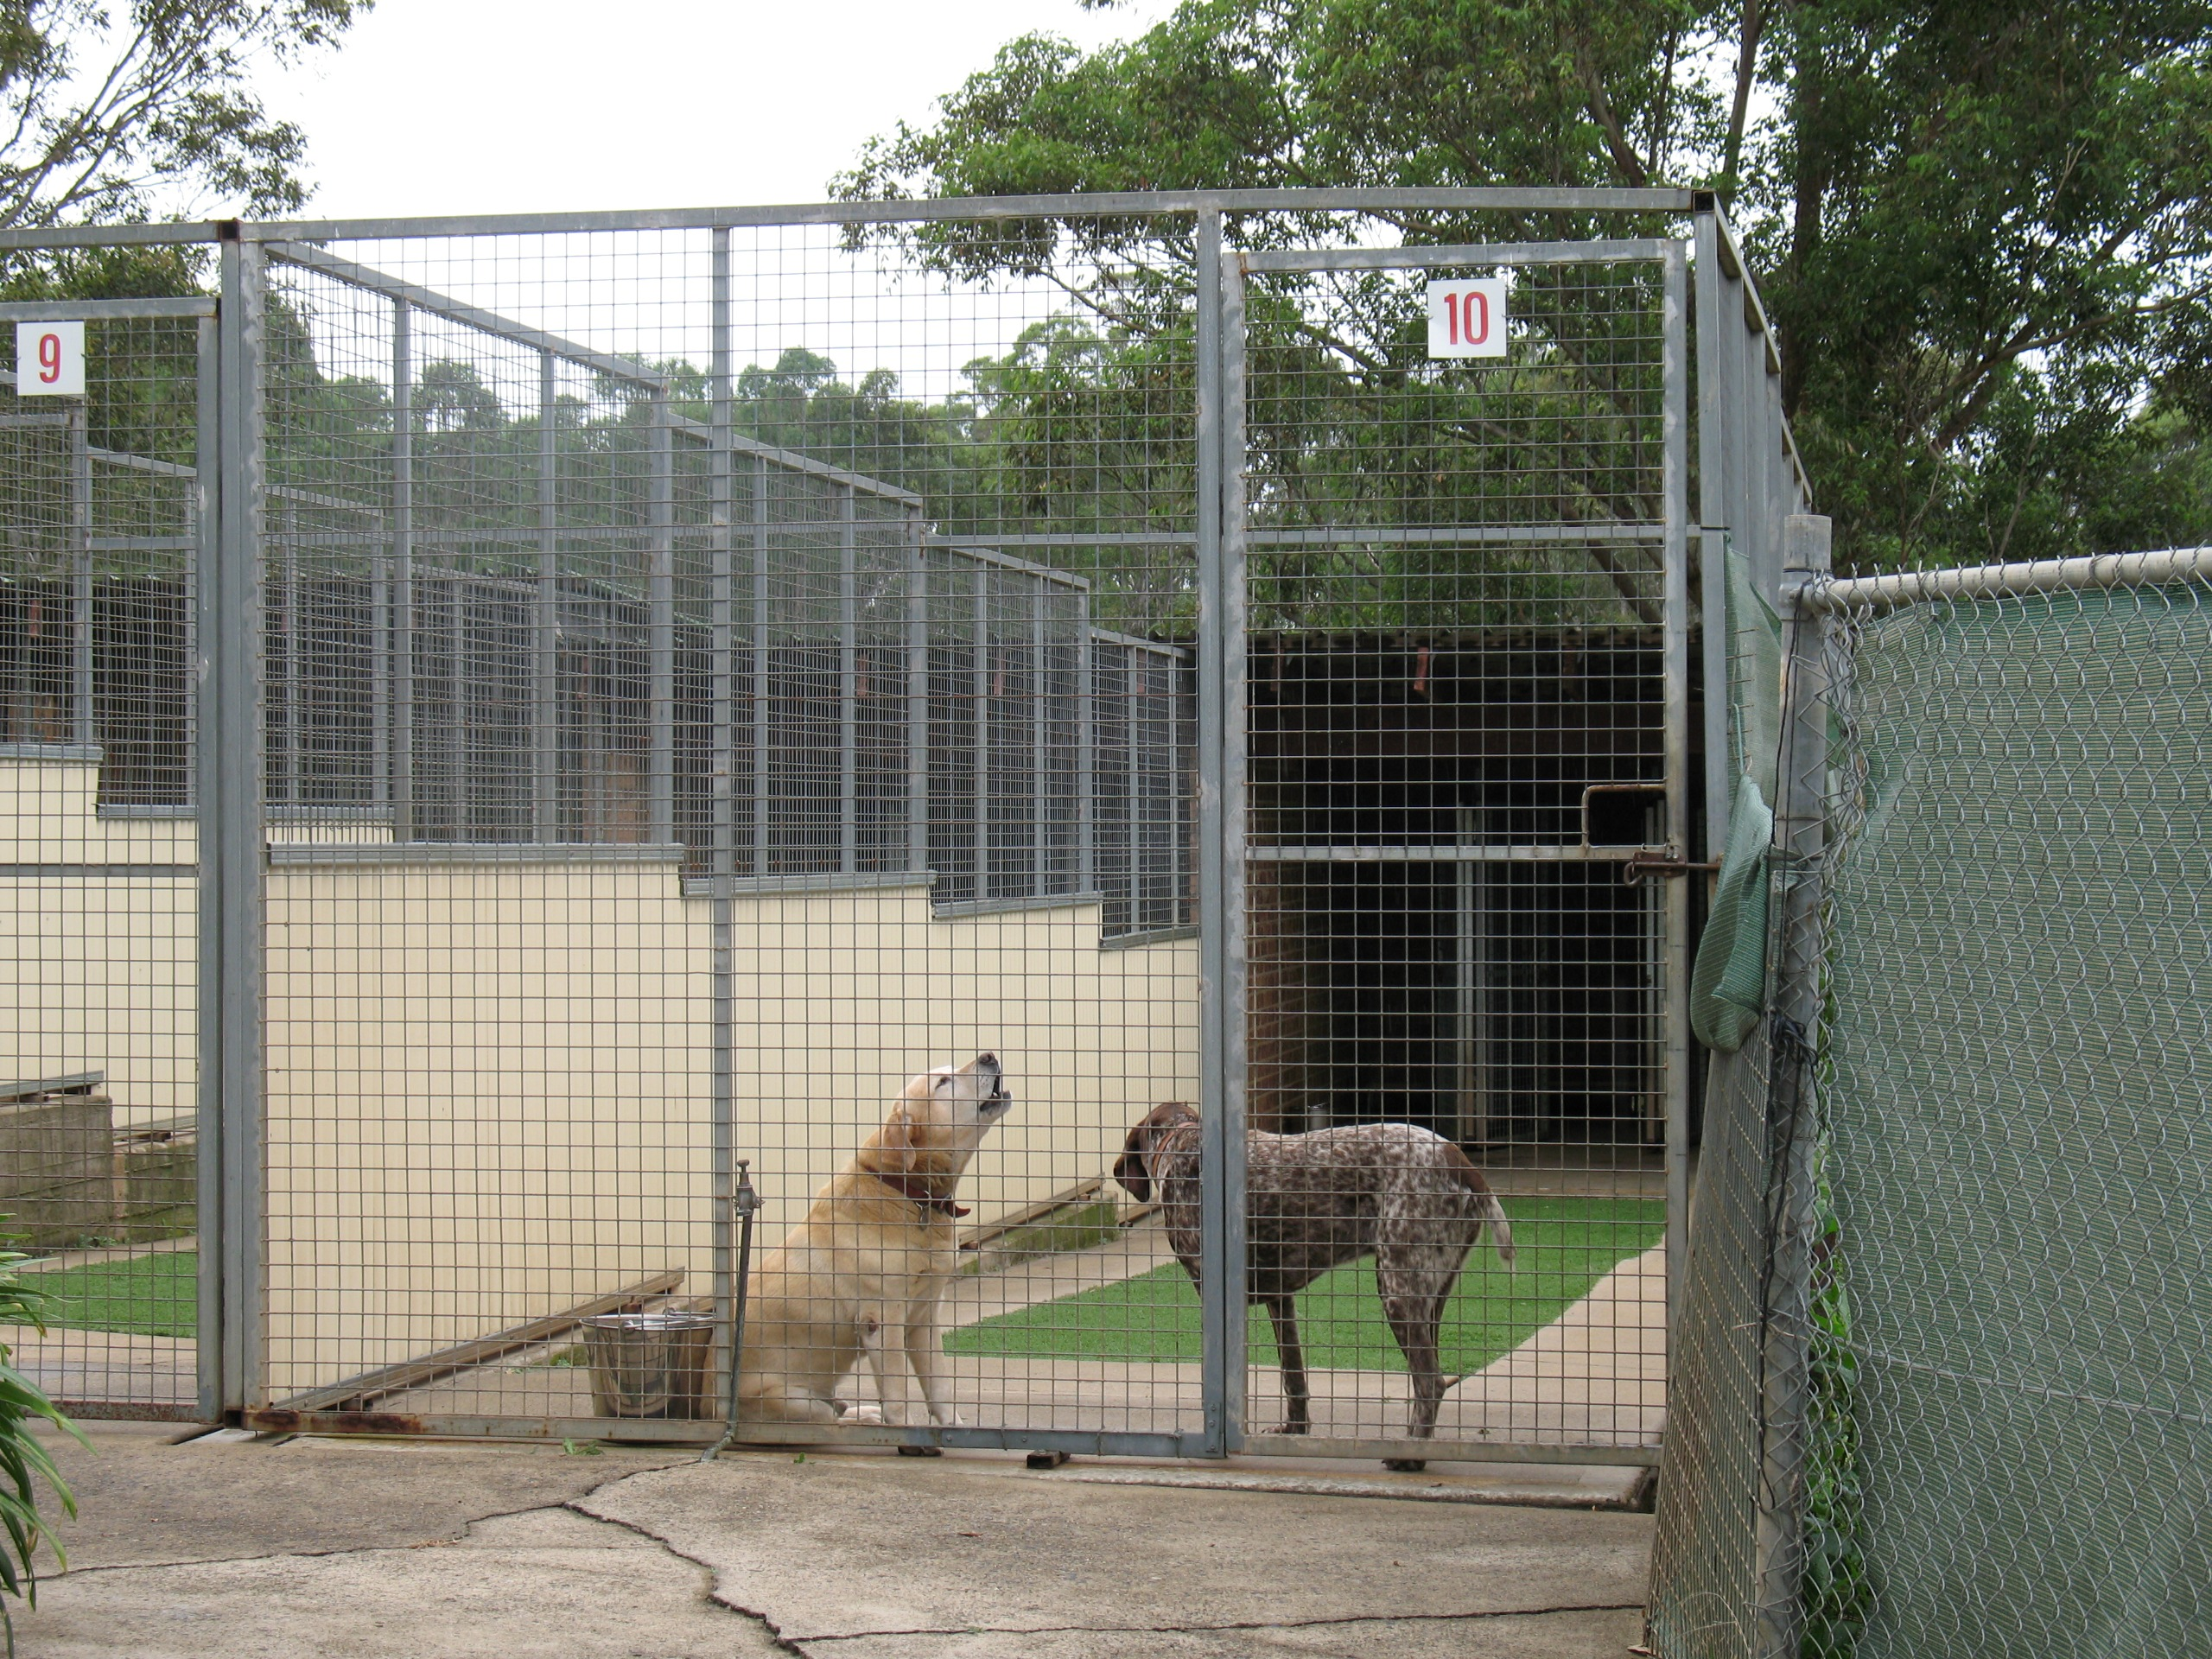 Dogs in a compound barking and howling